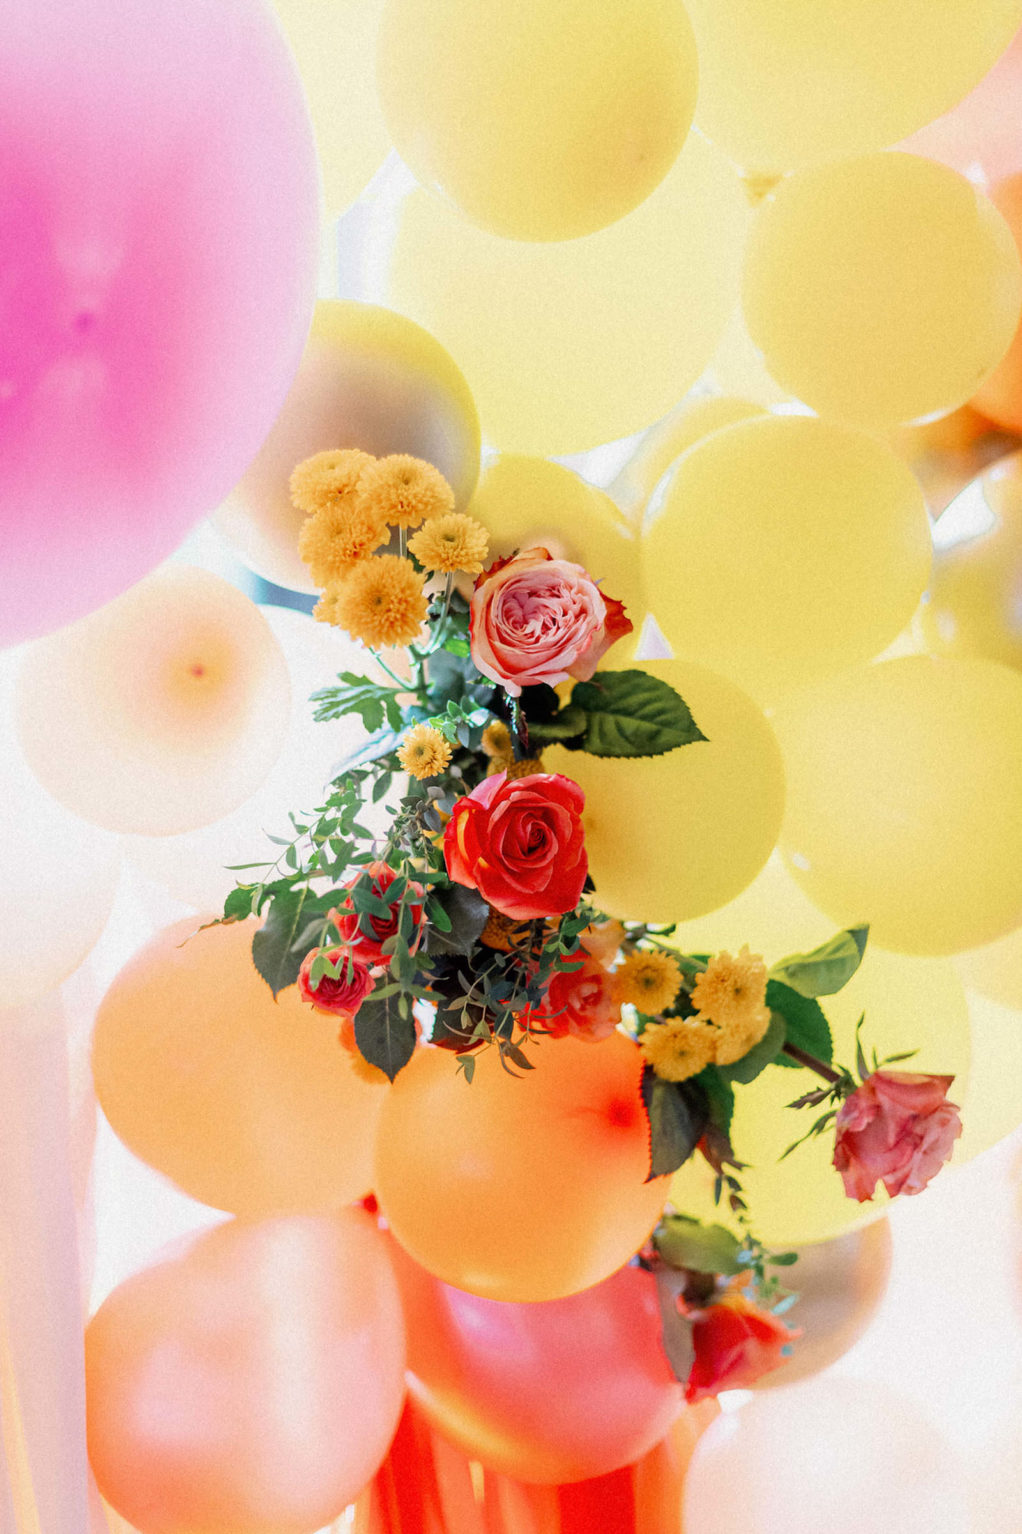 Colorful and Whimsical Wedding Decor, Yellow, Pink, Orange and White Balloon Ceremony Backdrop with Yellow Marigolds and Orange and Pink Roses Floral Arrangement   Tampa Bay Wedding Photographer Dewitt for Love